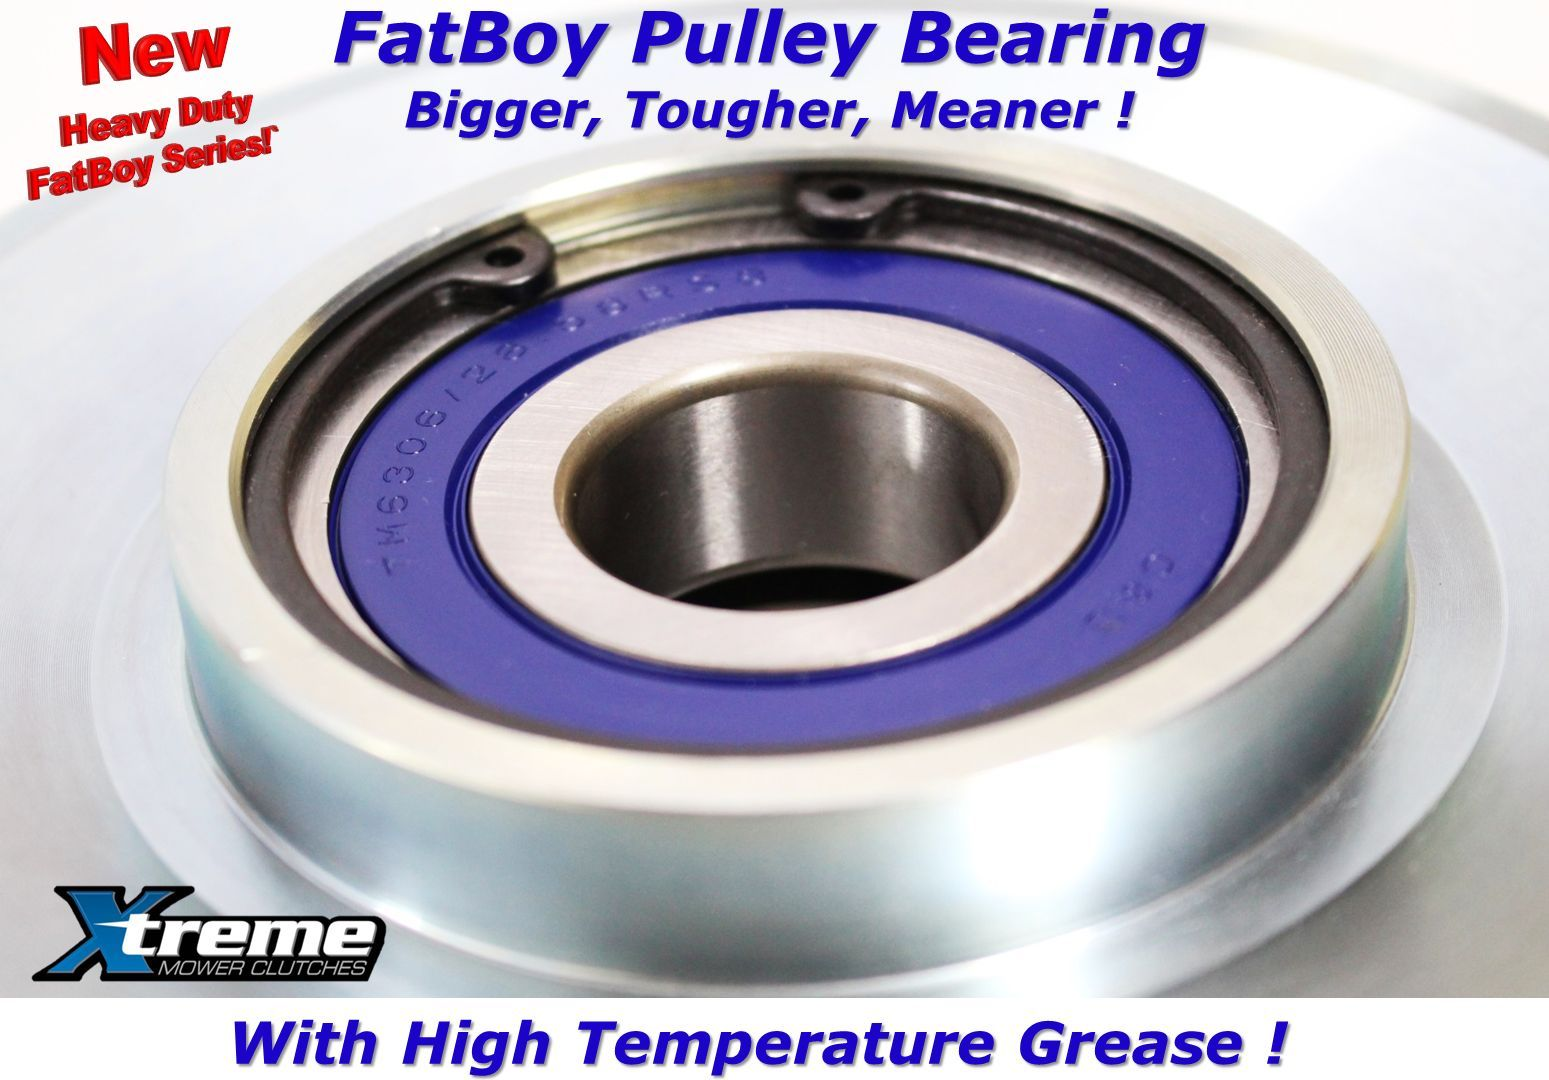 NEW Heavy Duty FatBoy Series ! PTO Clutch Replacement For Warner Toro 5218-233